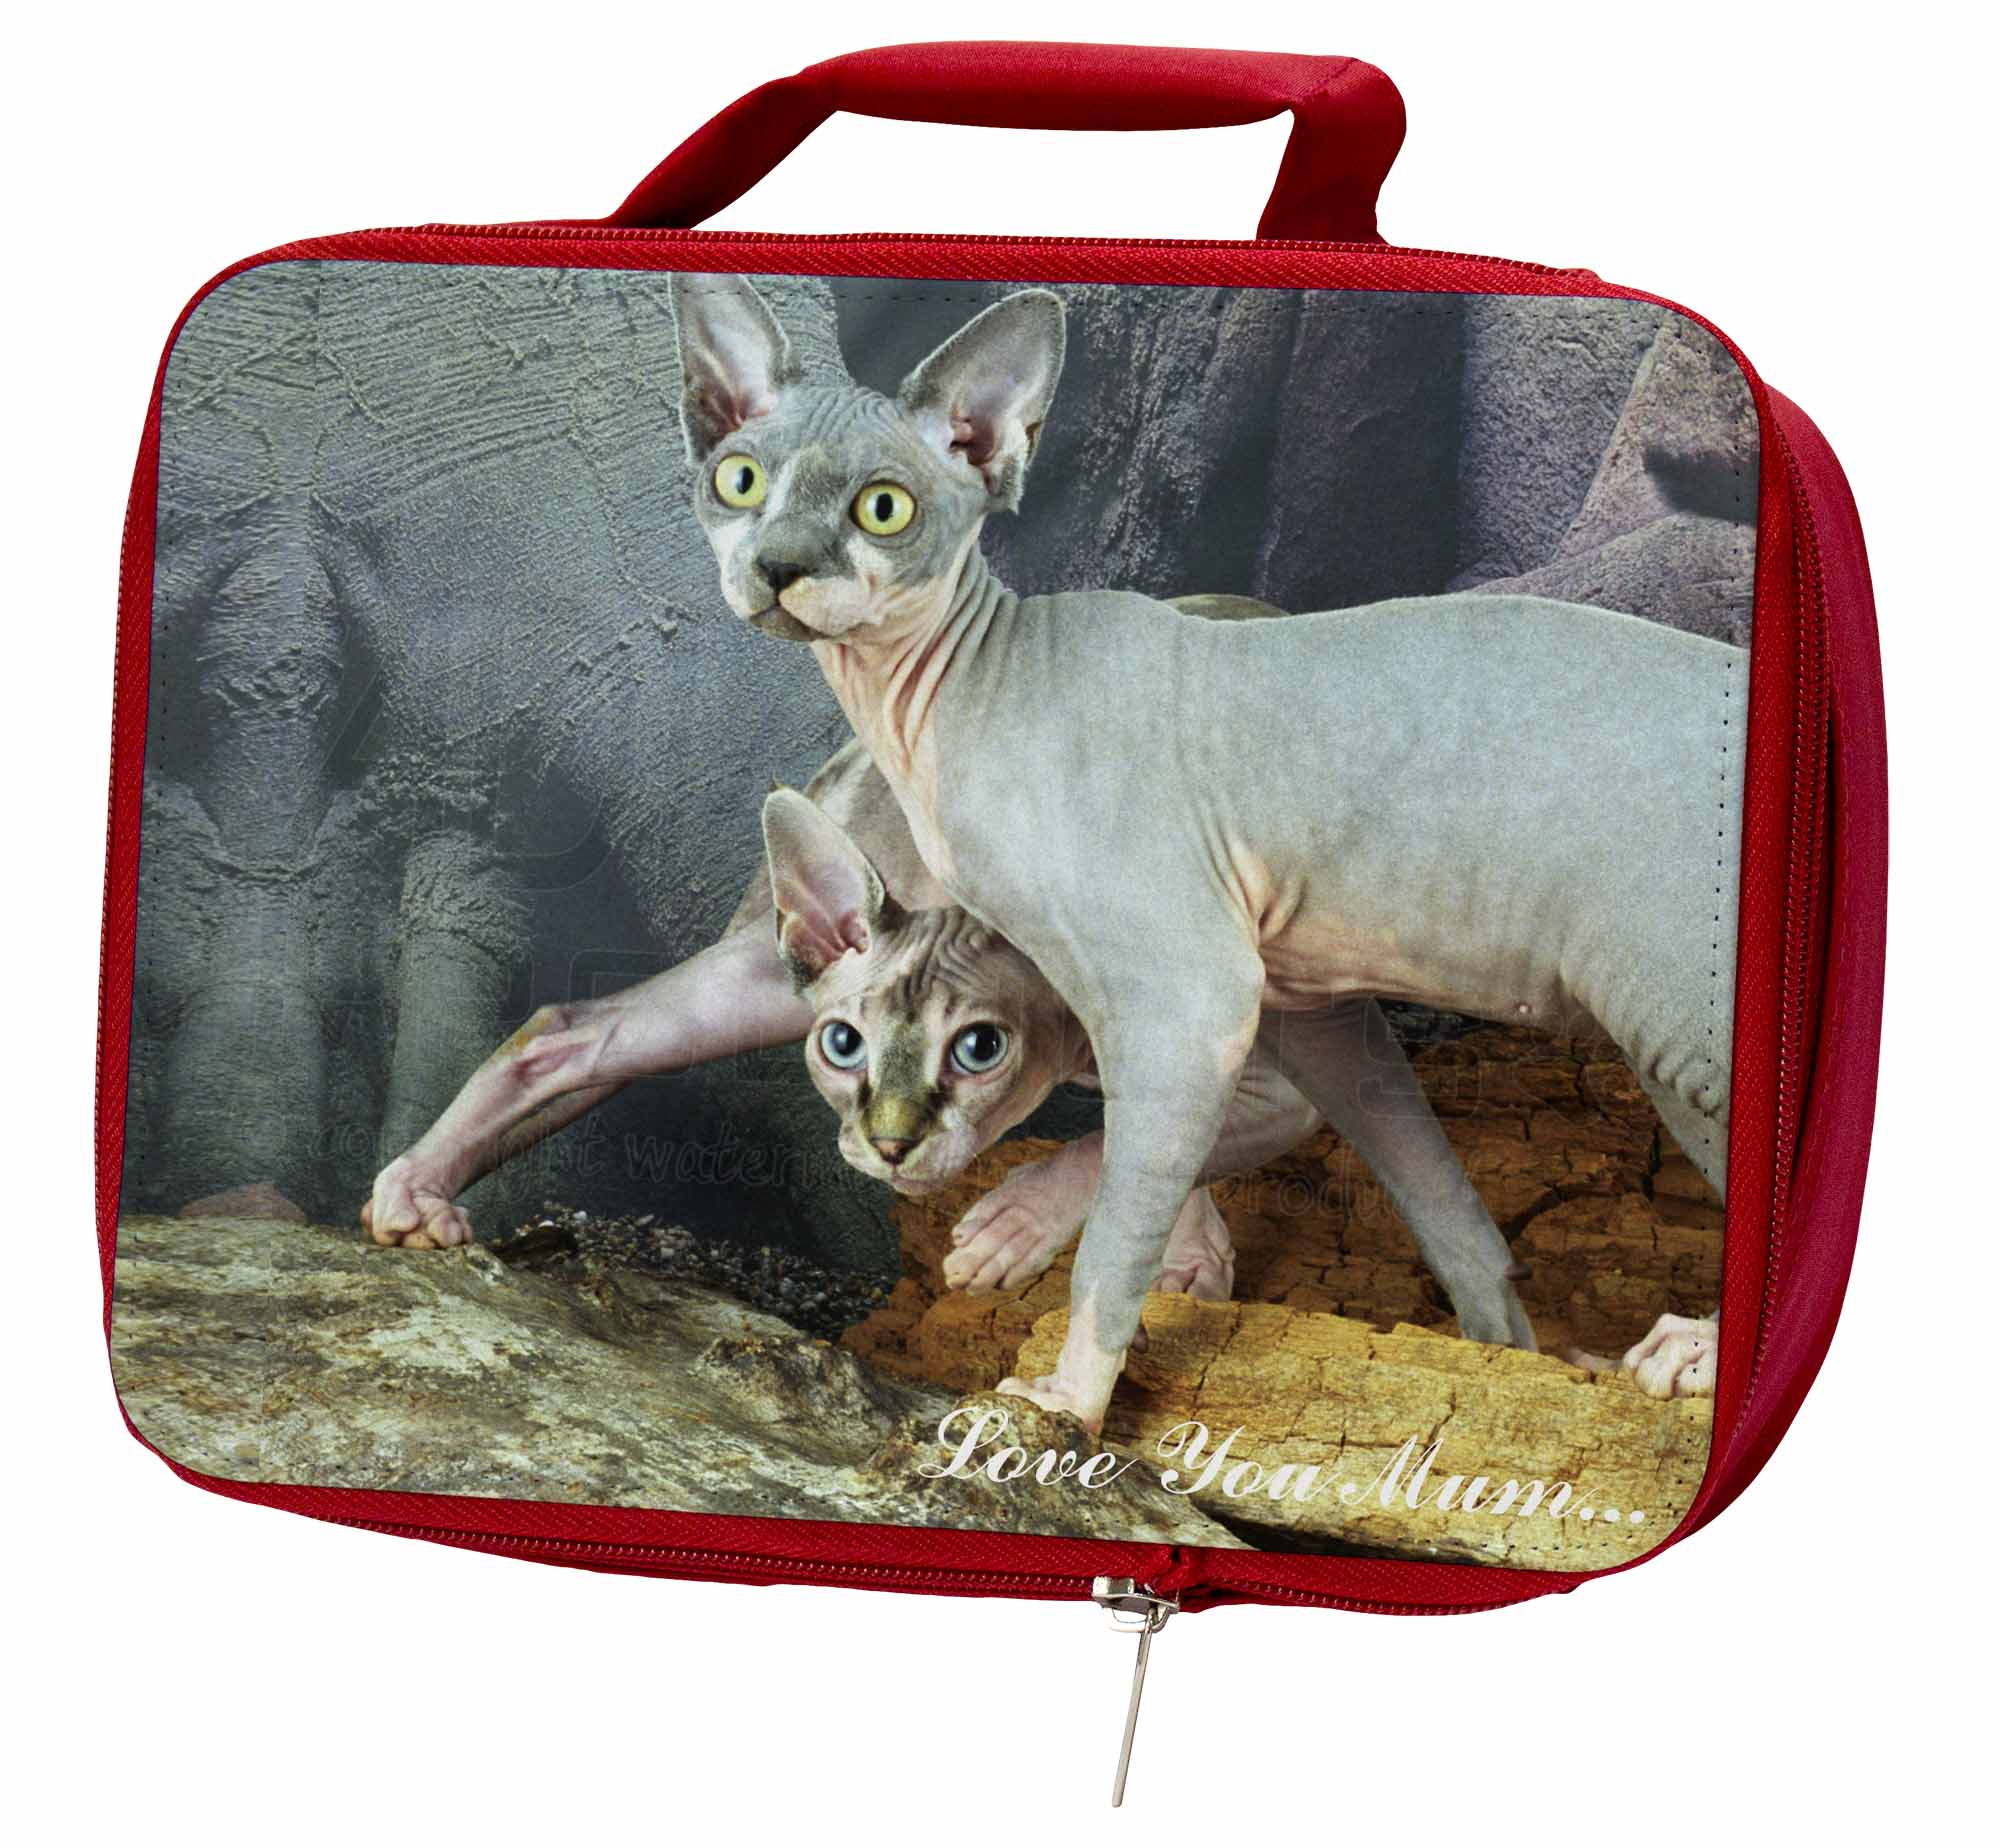 Sphynx Cat 'Love You Mum' Insulated Lunch Red School Lunch Insulated Box/Picnic Bag, AC-24lymLBR 17909f